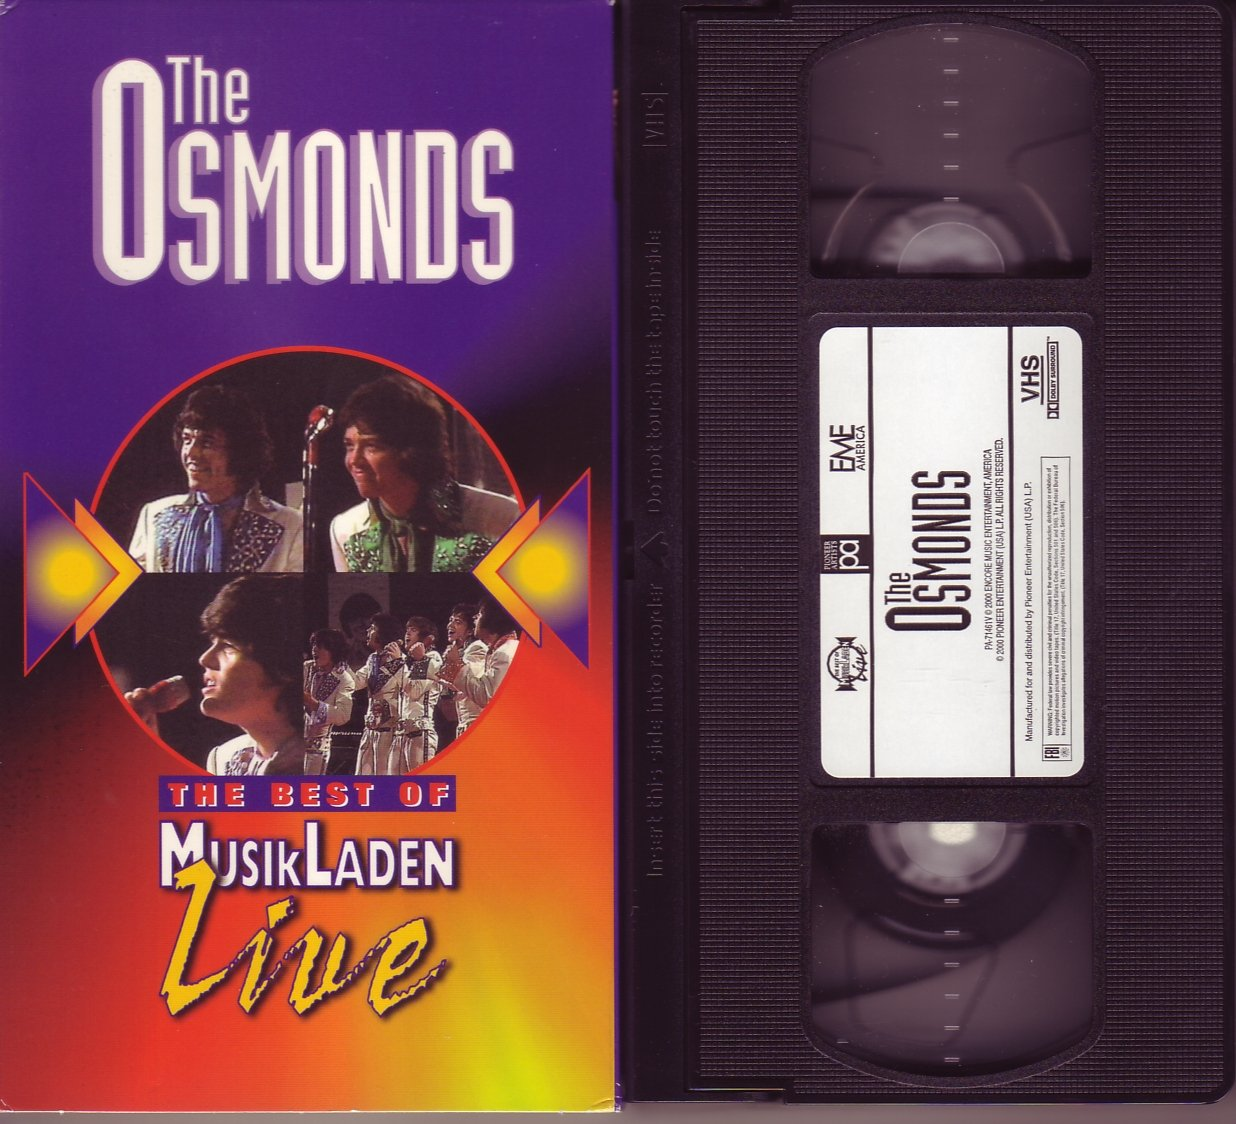 THE BEST OF MUSIKLADEN LIVE - THE OSMONDS 1972 Rare DONNY vhs VIDEO